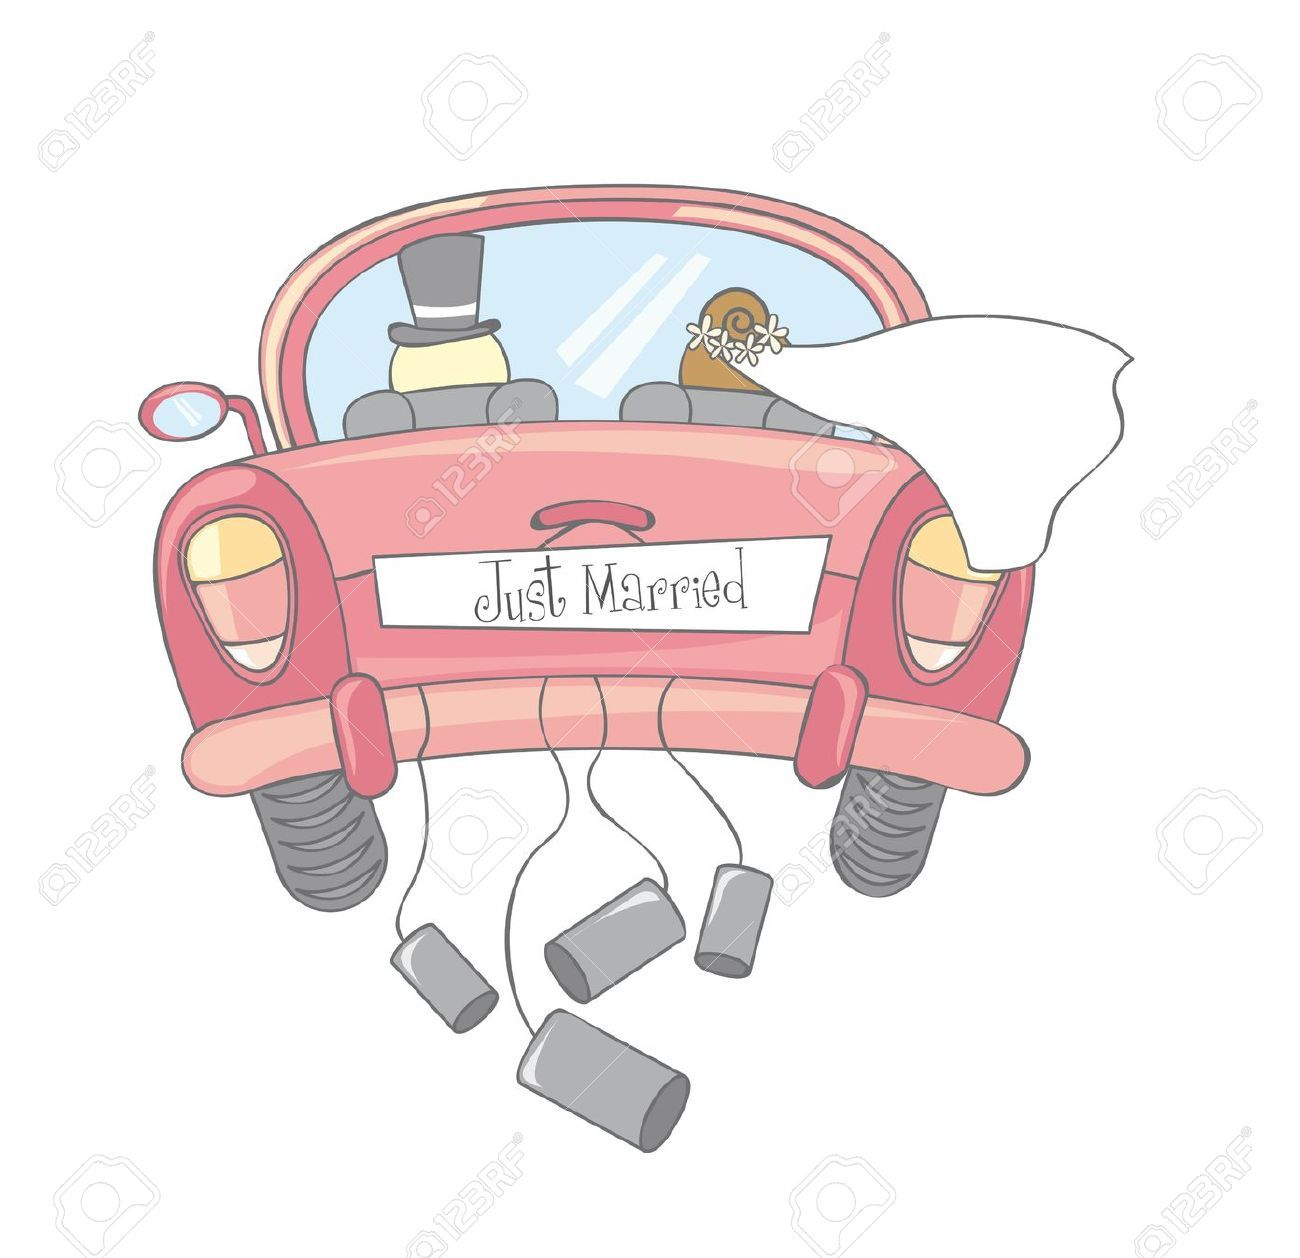 Just Married Car Drawing at GetDrawings.com | Free for personal use ...